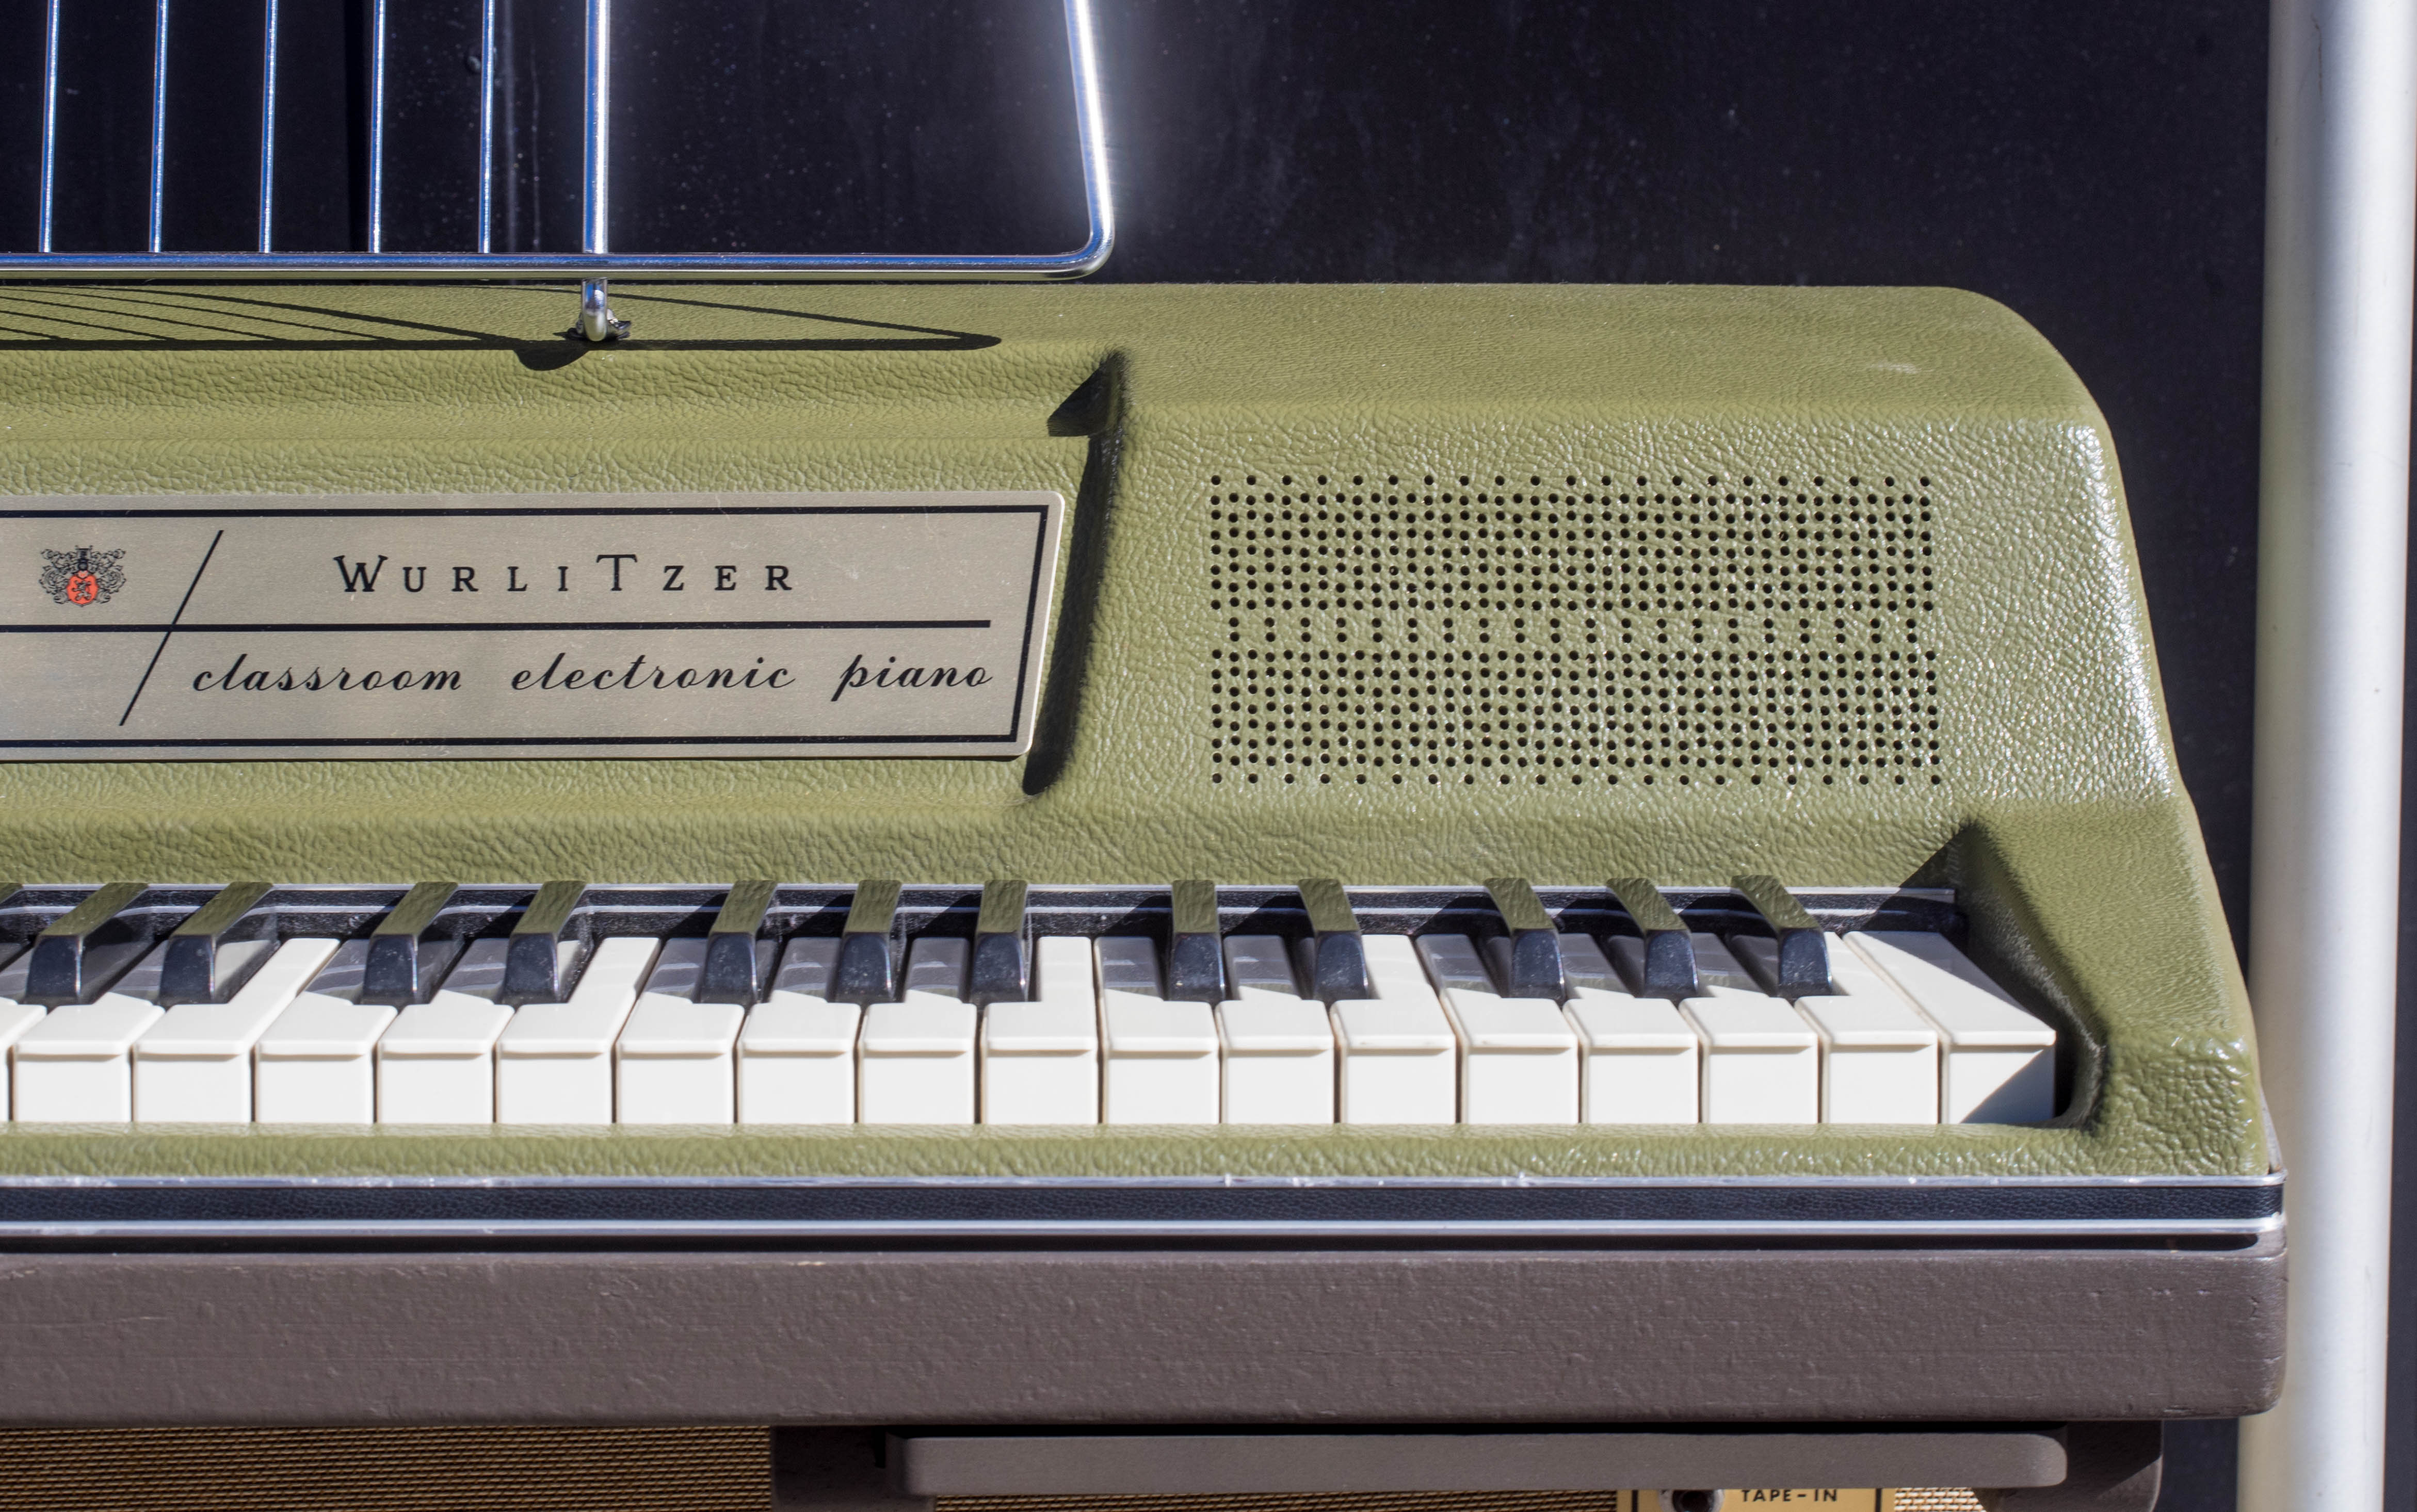 Key Note Visualizer Archives - The Chicago Electric Piano Co